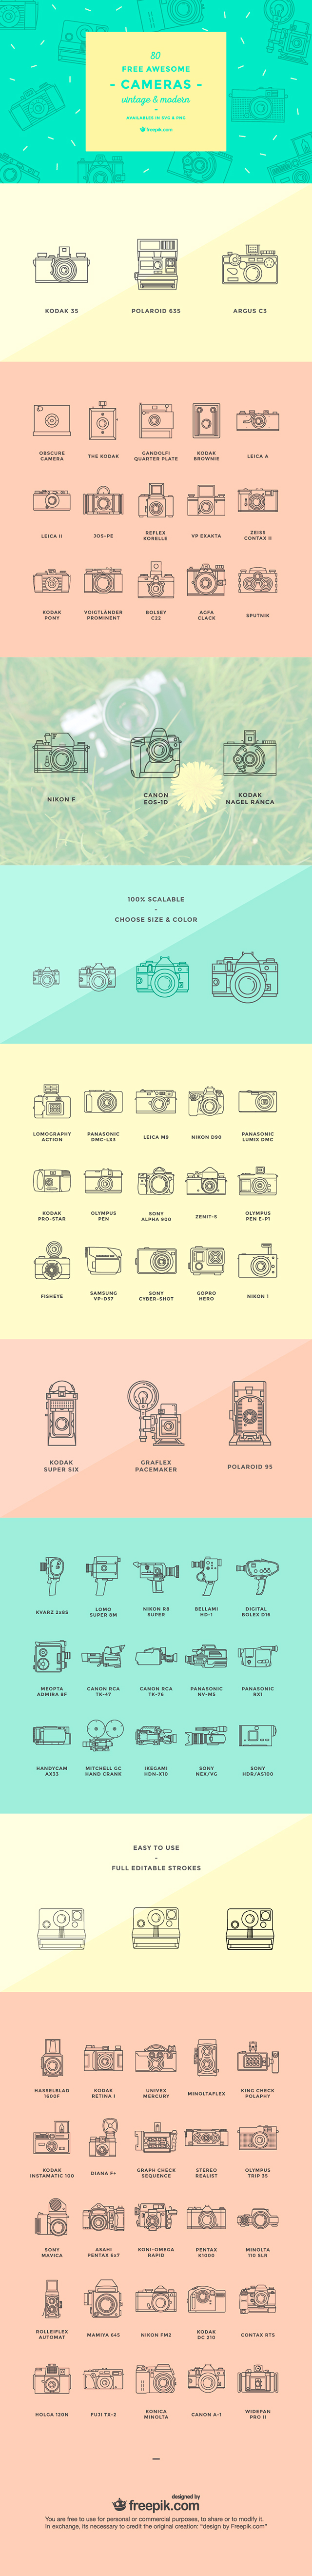 http://www.design-share.com/wp-content/uploads/2015/08/stock_graphics_vintage_camera_vectors.jpg